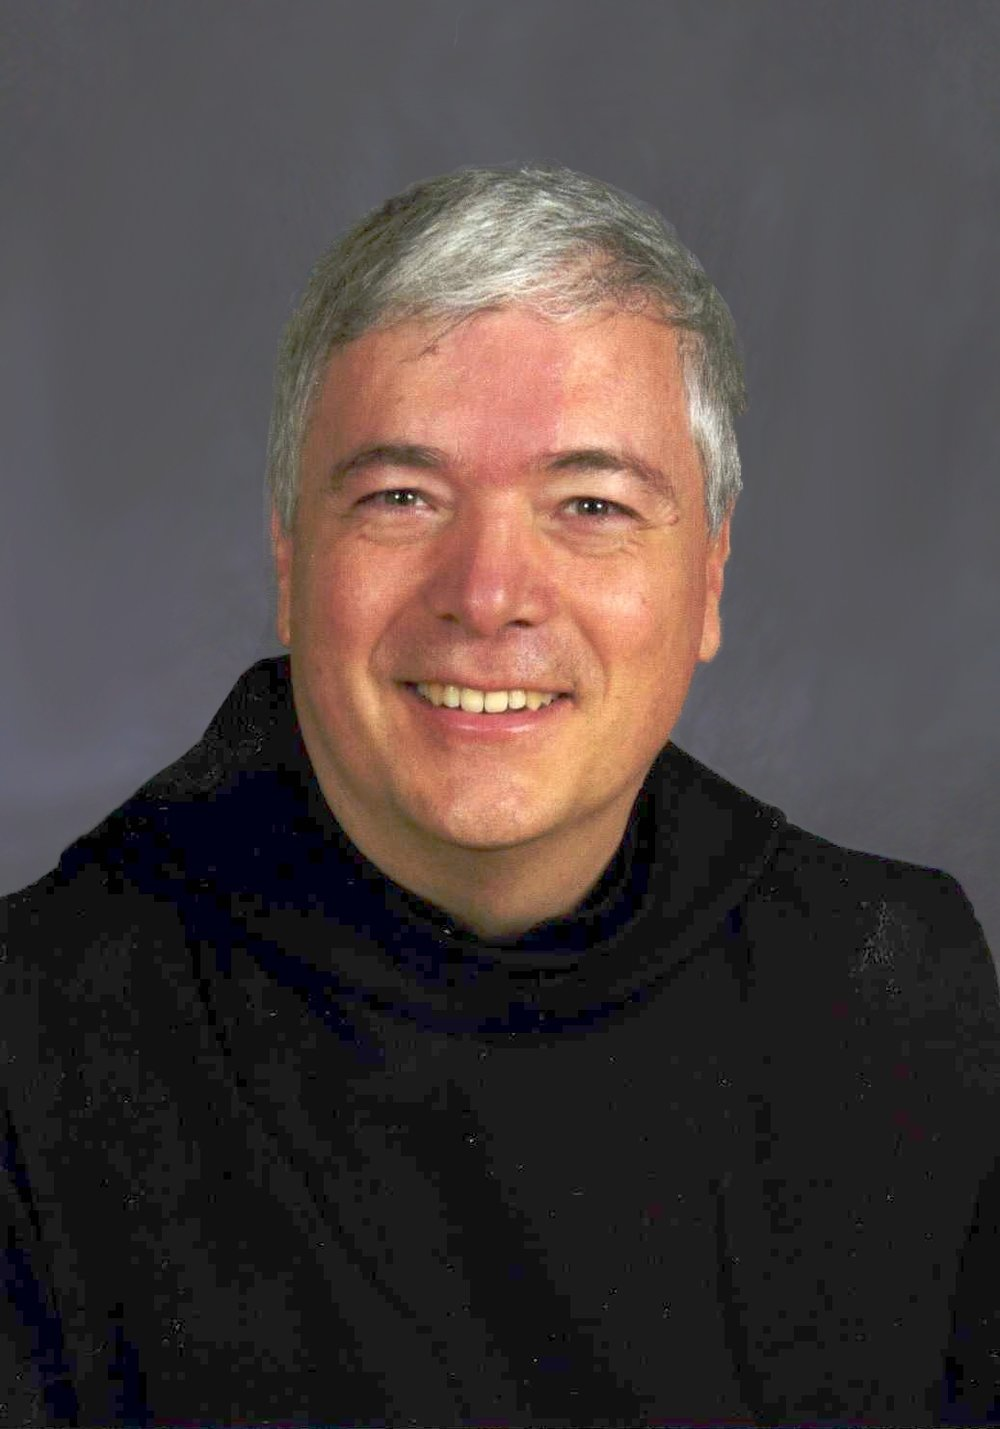 BR. EFRAIN ROSADO, OSB Theology Teacher, John's Preparatory School; Latino ministries in central Minnesota B.A. Civil Engineering, 1992; M.A. Monastic Studies, Saint John's University School of Theology and Seminary; M.Div Saint John's University School of Theology and Seminary